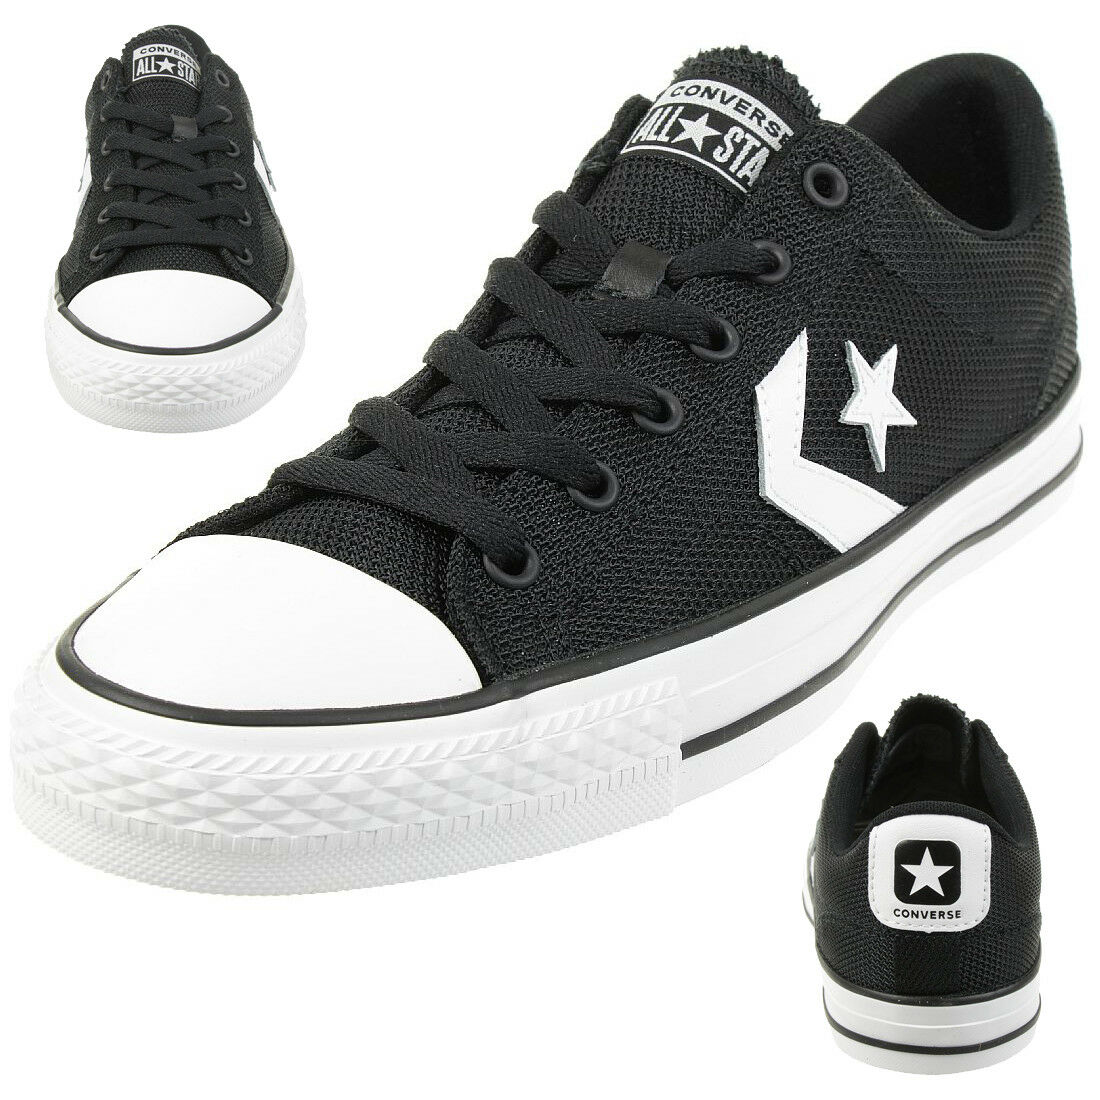 Converse Star Player Ox shoes Trainers 160581c Black